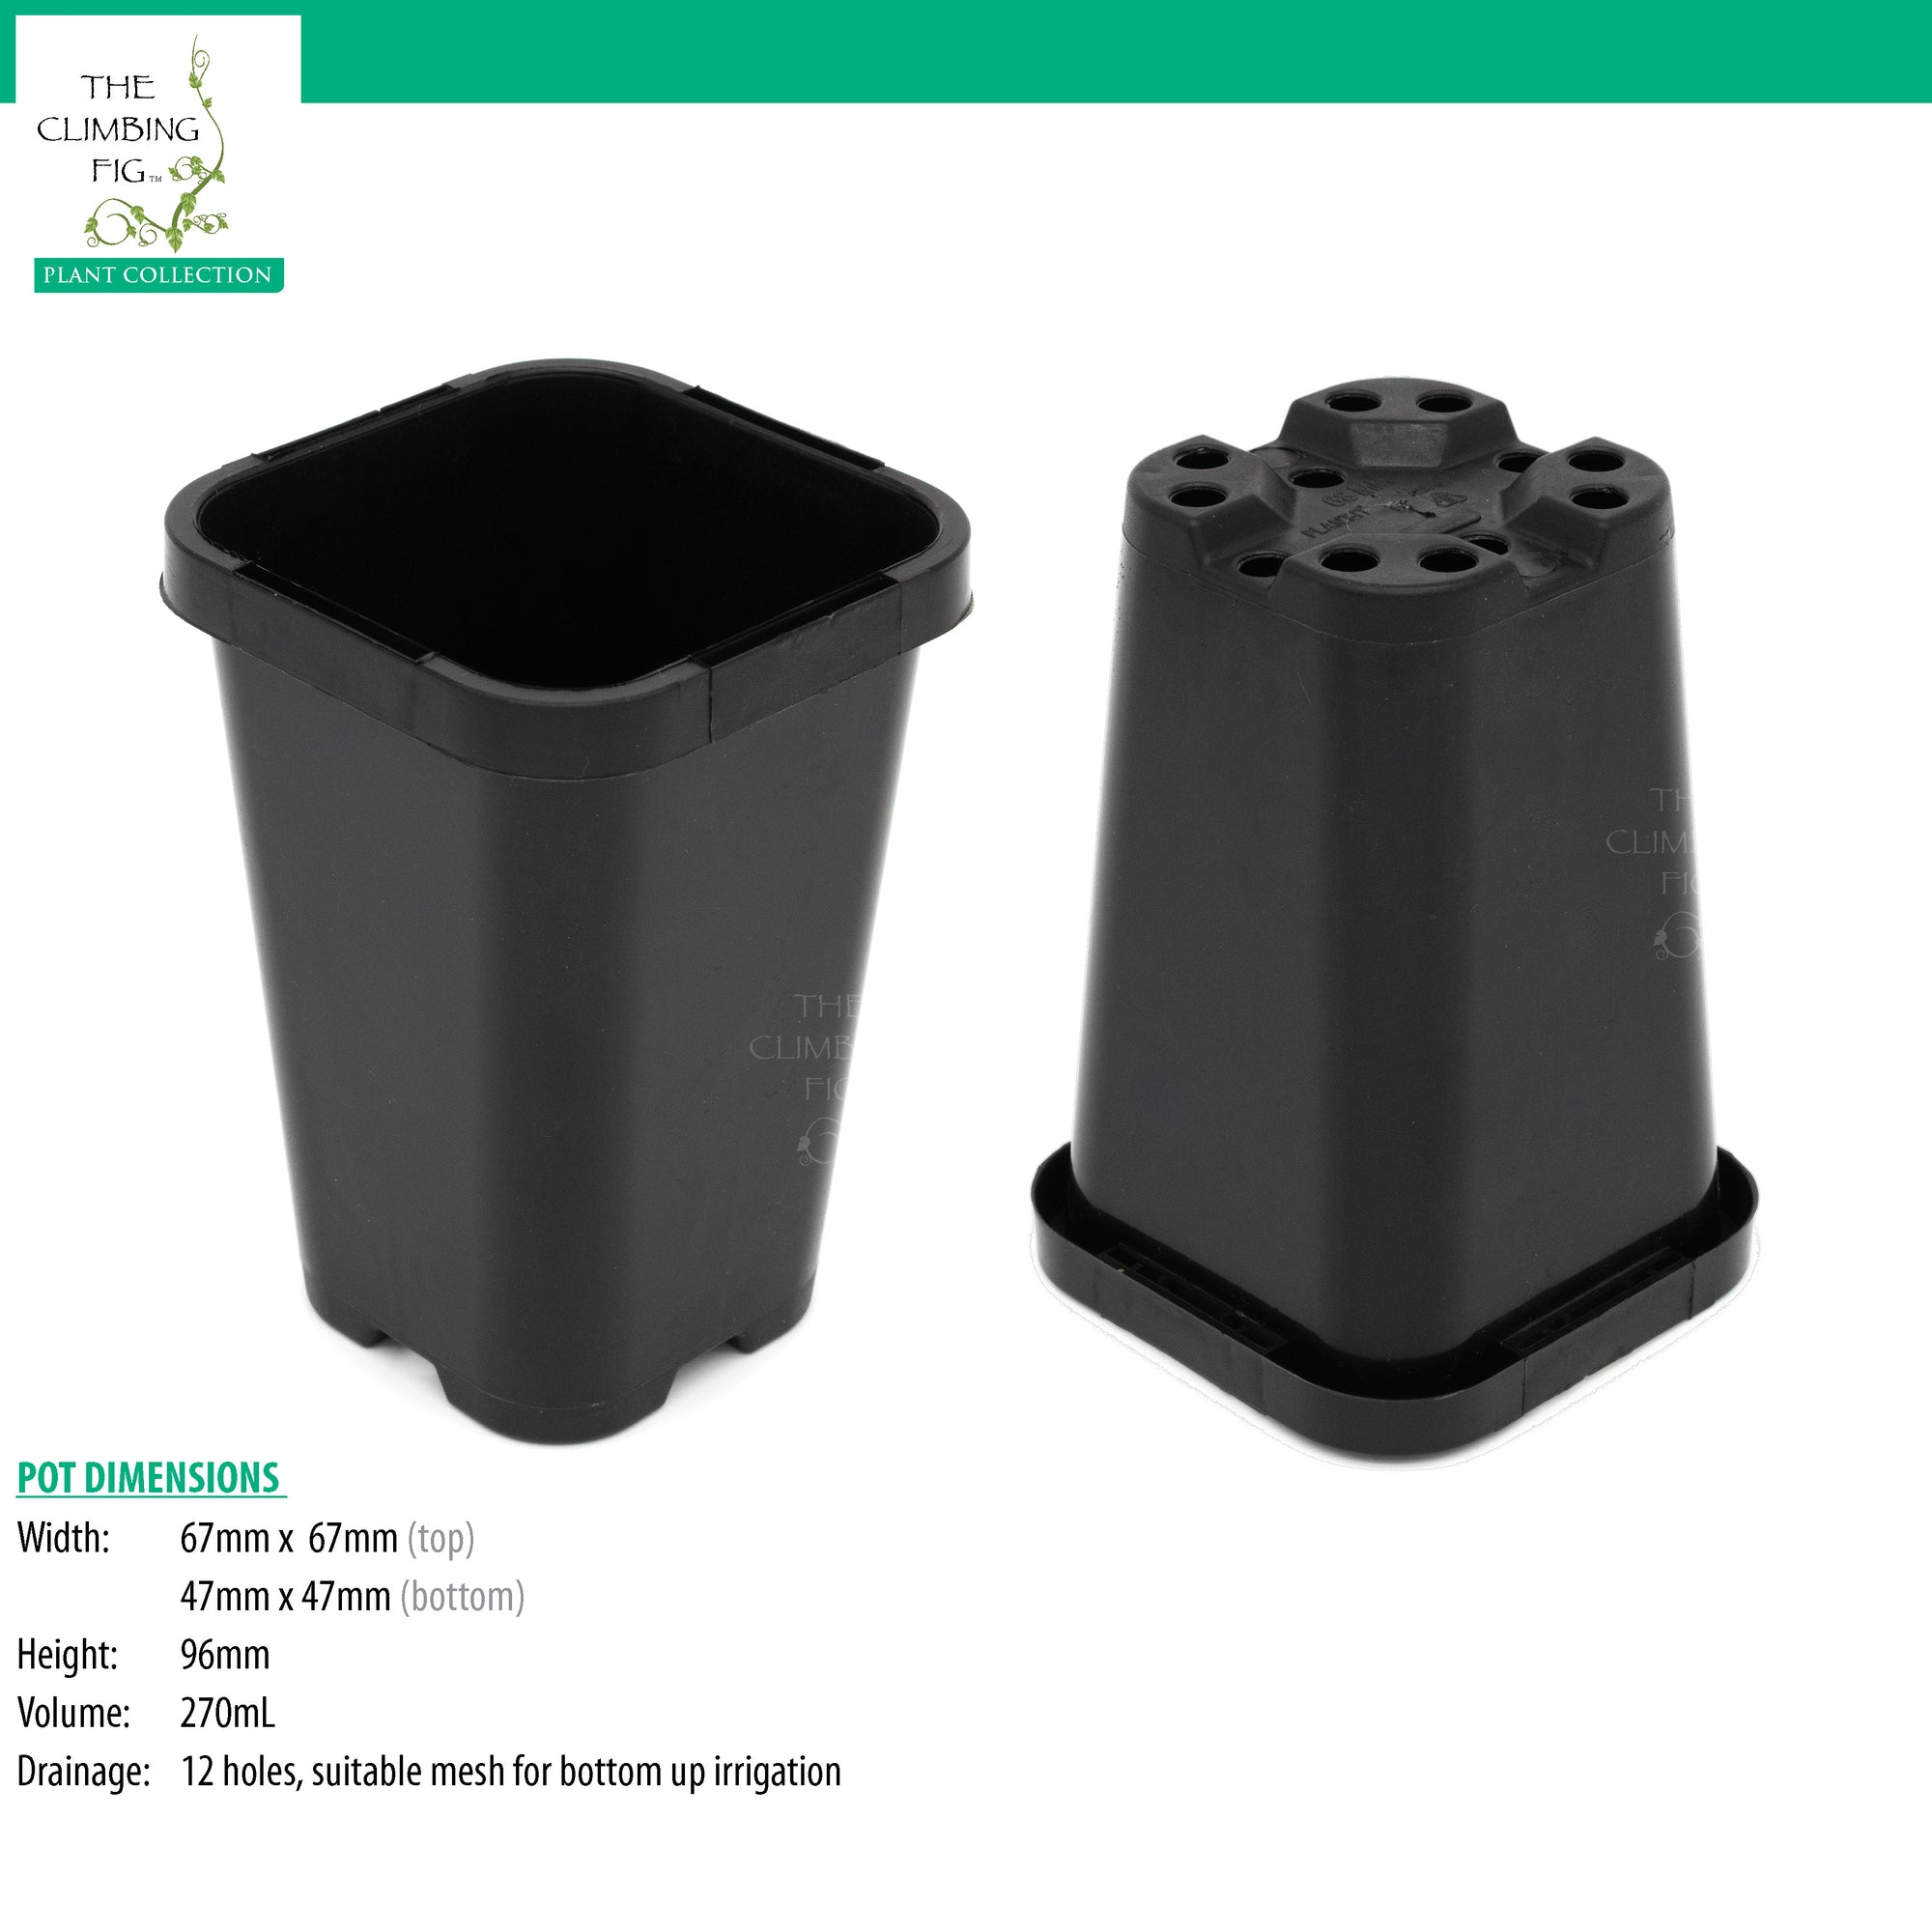 68mm Square BLACK Plastic Pots. Premium rigid pots with label holder slits